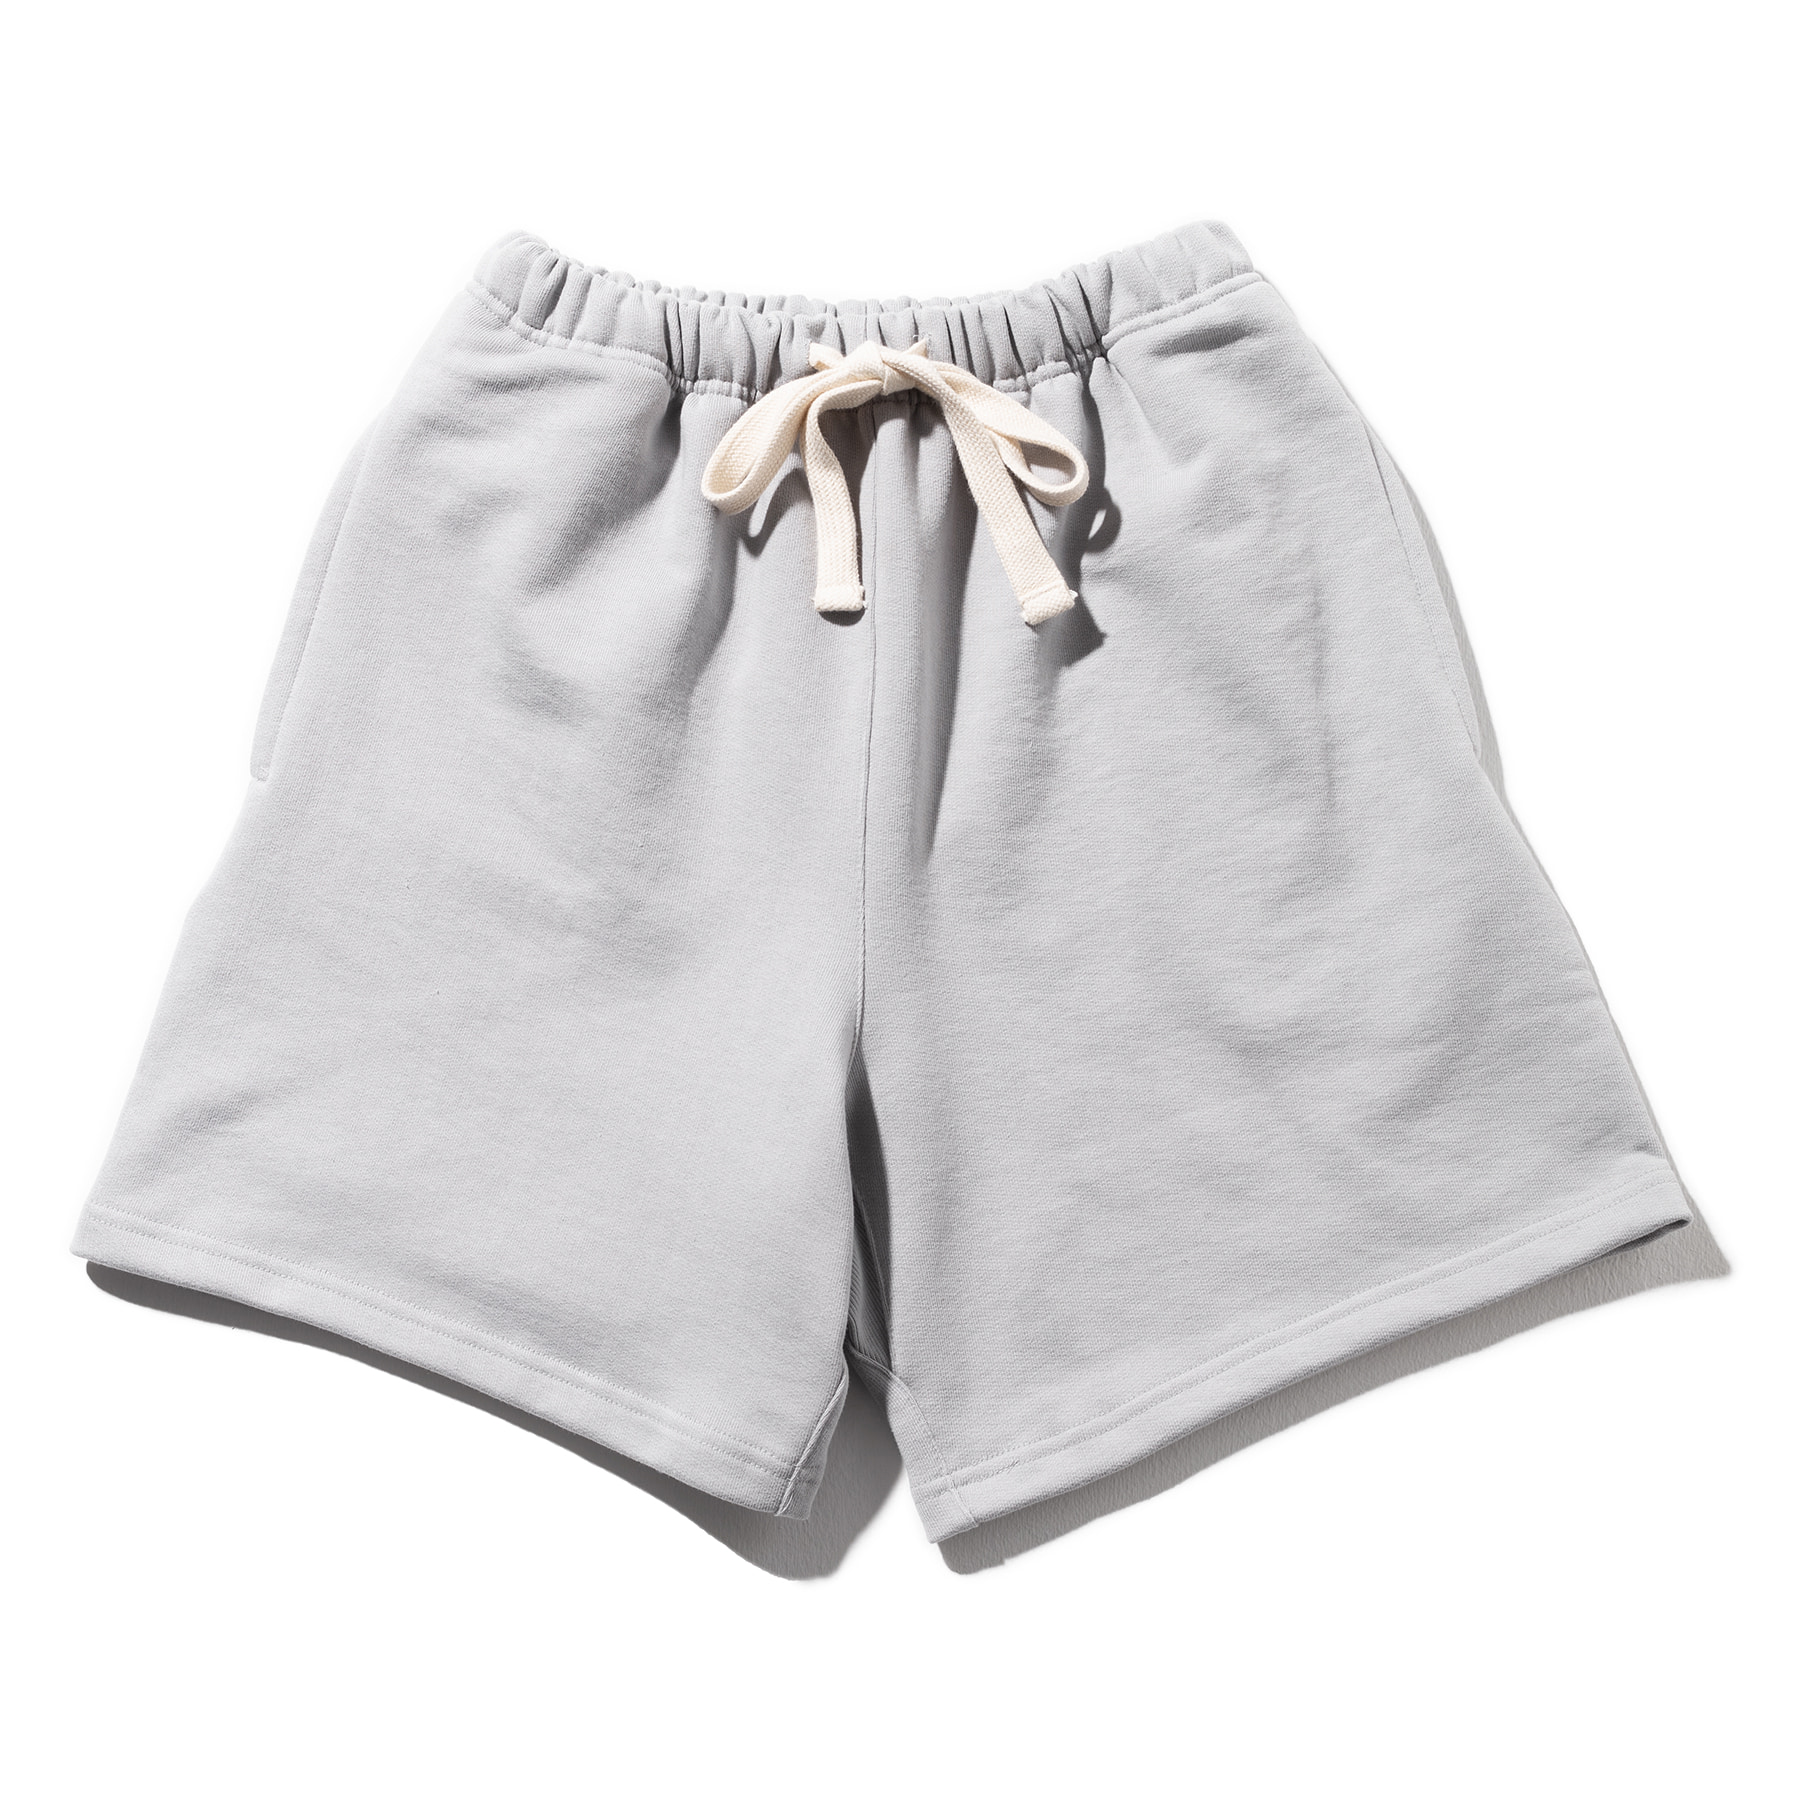 BASIC TRANING SHORT PANTS MSOSP003-LG